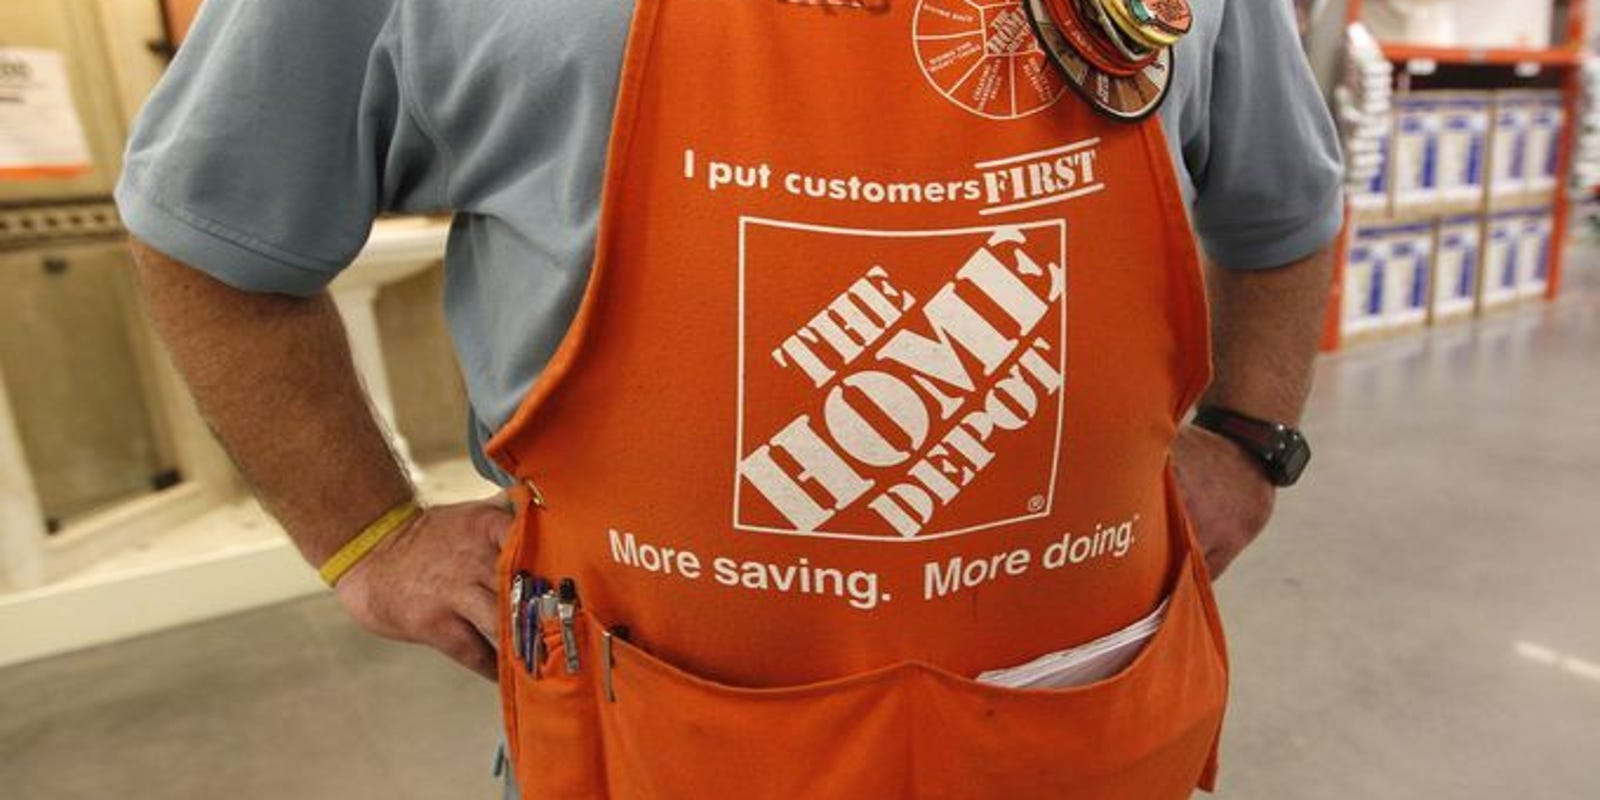 Home Depot plans to hire more than 1,600 people in metro Phoenix